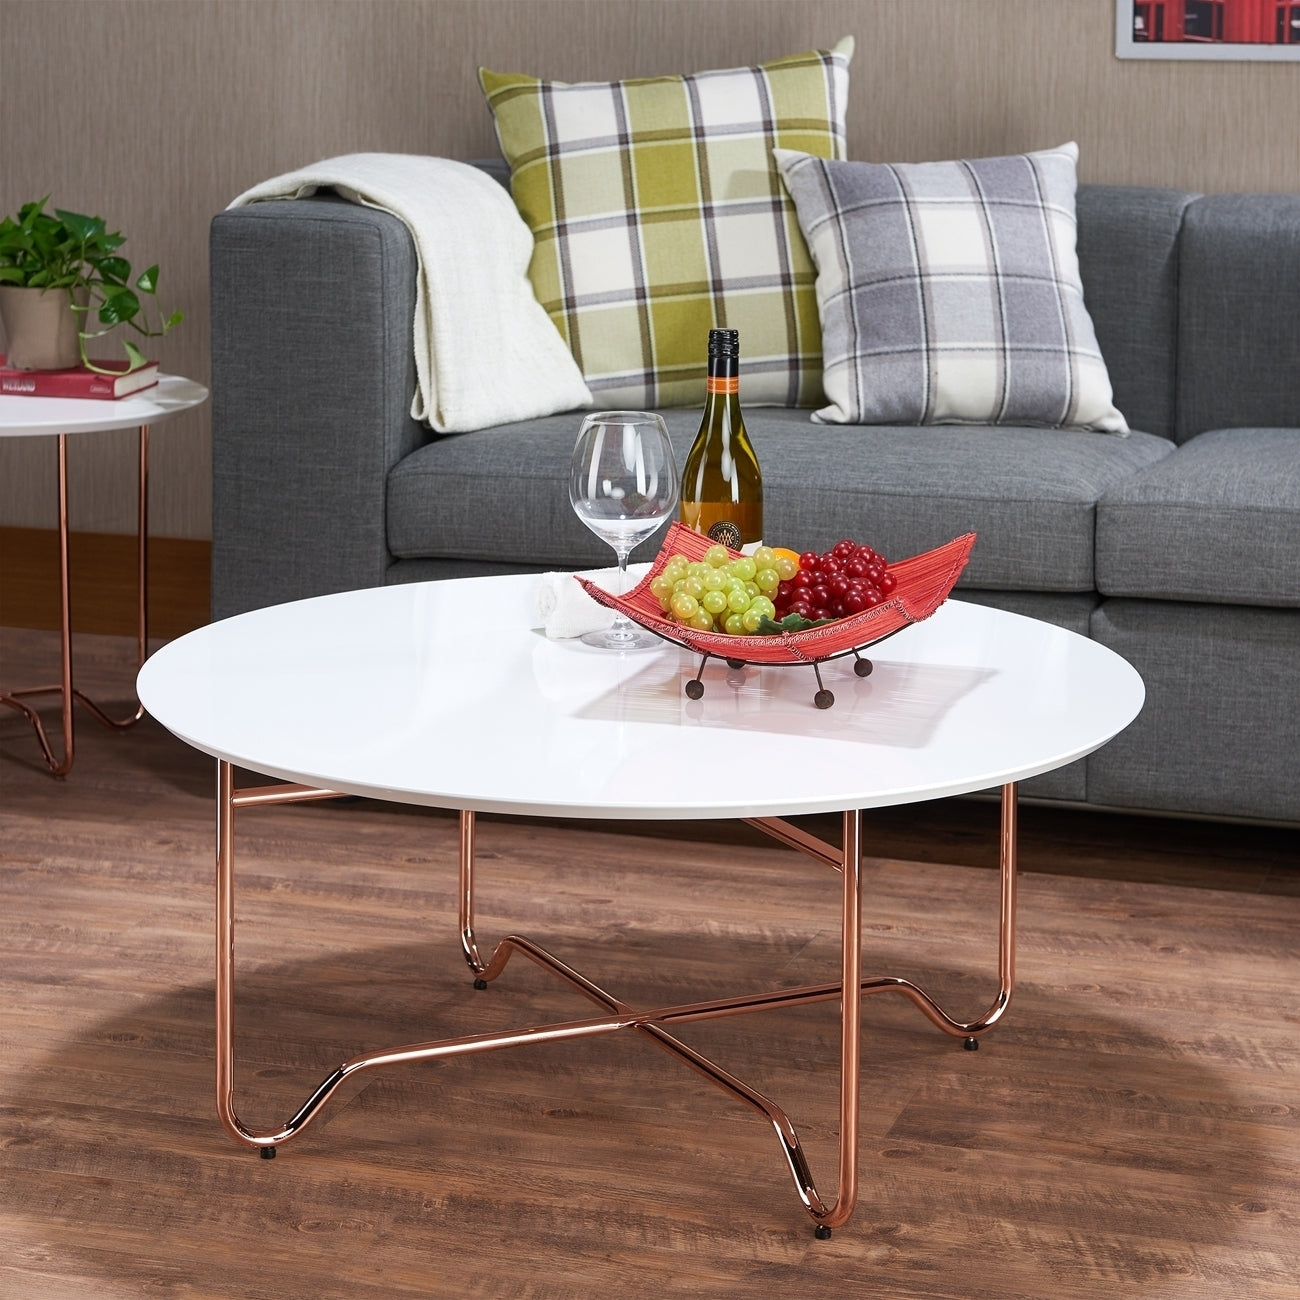 Acme 81860 Canty White Rose Gold Finish Coffee Table